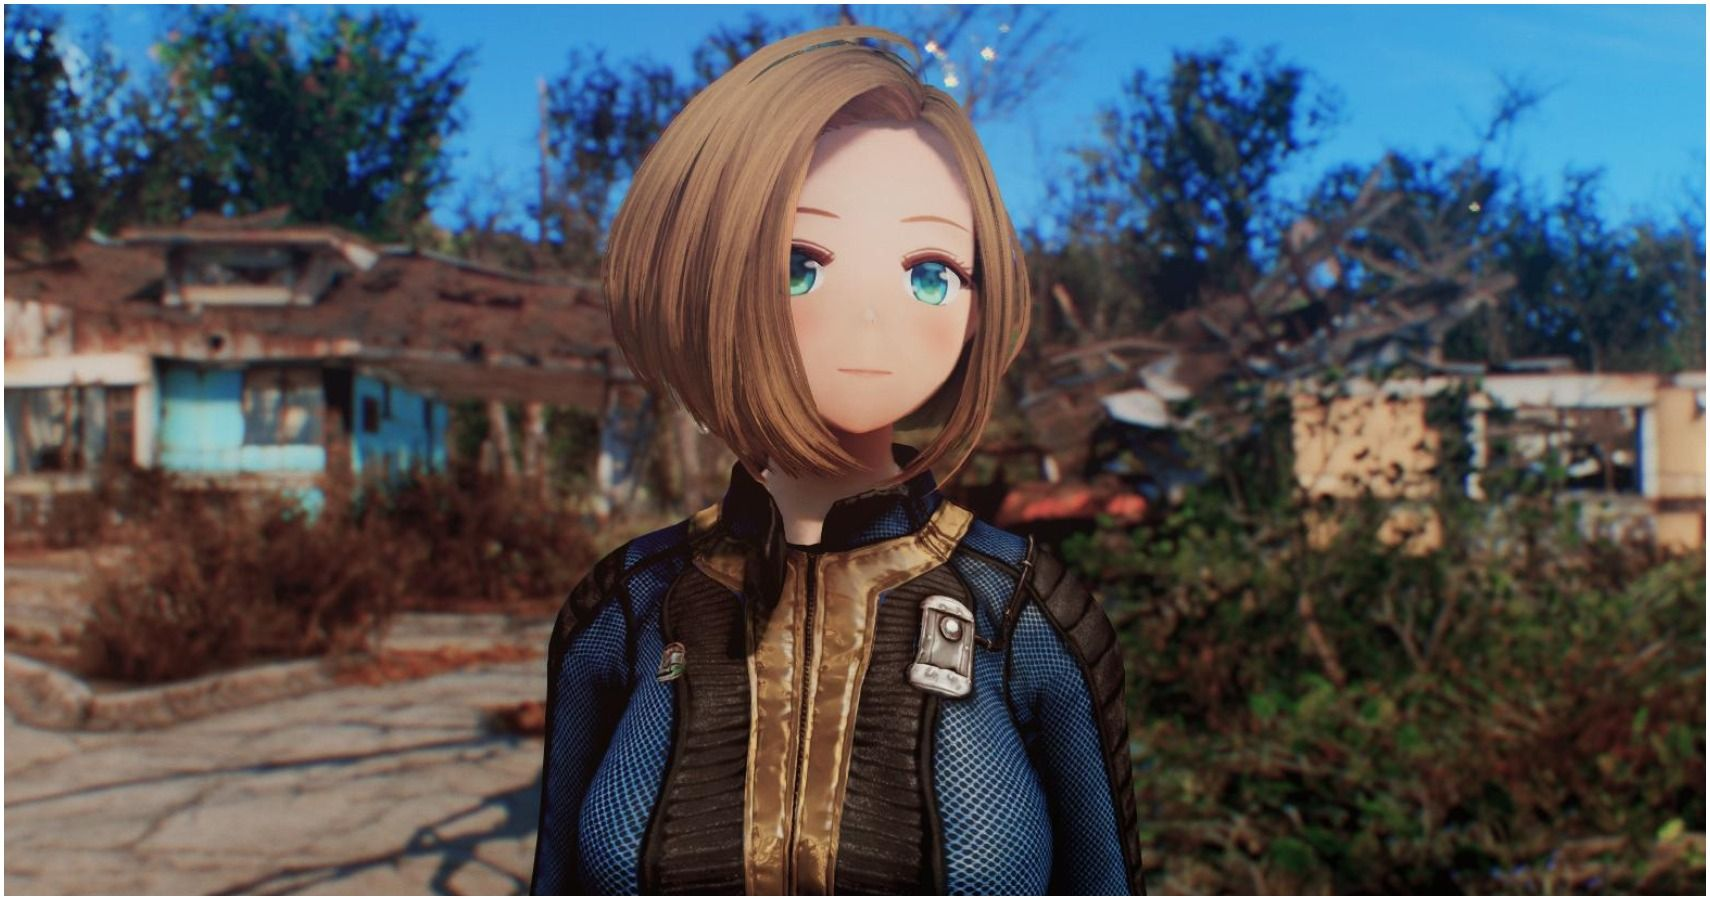 anime Fallout characters 4